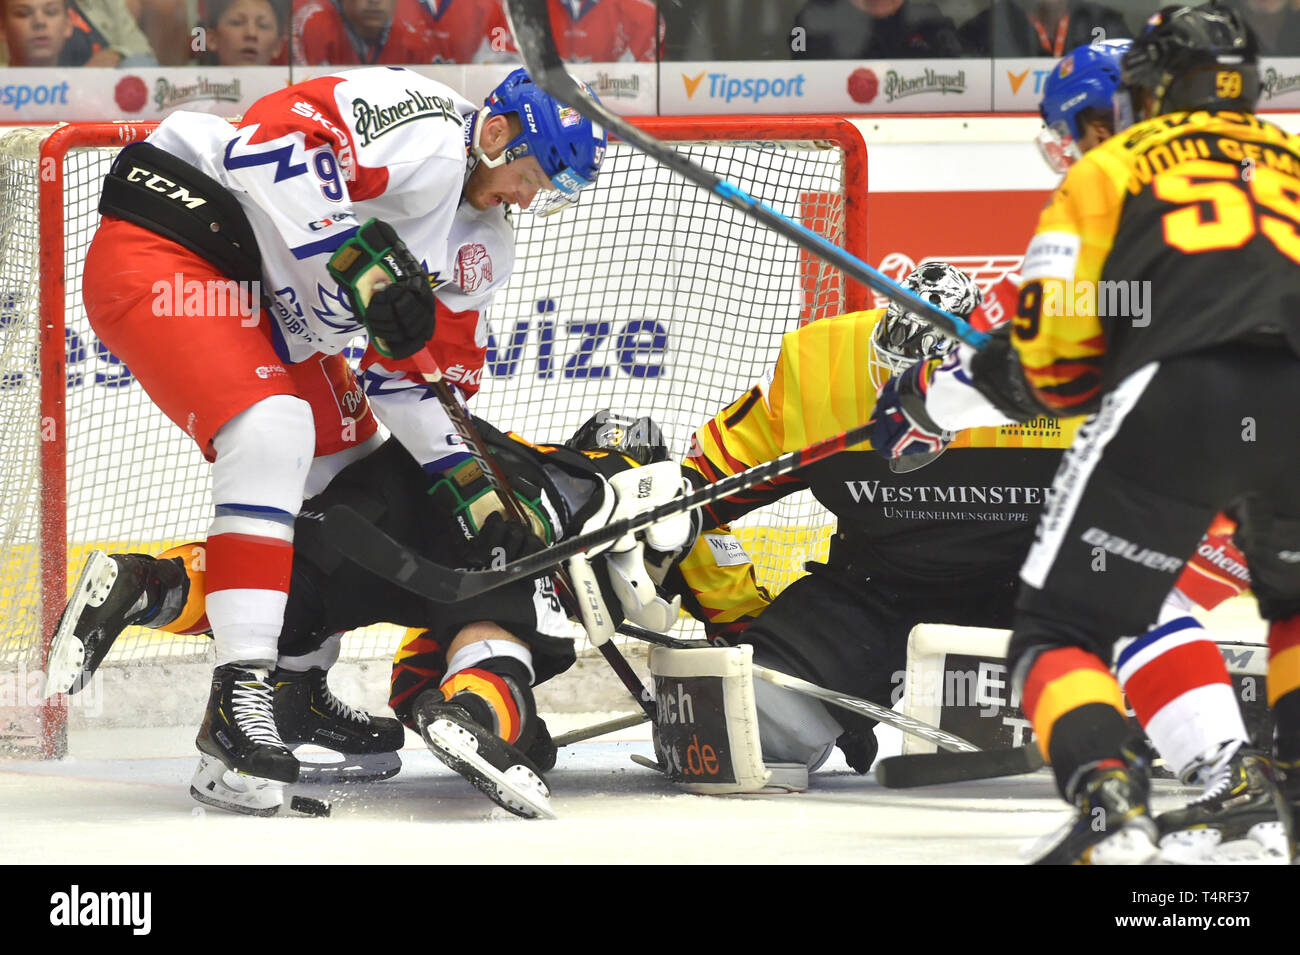 Karlovy Vary, Czech Republic. 18th Apr, 2019. (L-R) Radim Zohorna of Czech Republic, Dominik Bittner, Niklas Treutle and Tim Wohlgemuth of Germany in action during the Euro Hockey Challenge match Czech Republic vs Germany in Karlovy Vary, Czech Republic, April 18, 2019. Credit: Slavomir Kubes/CTK Photo/Alamy Live News Stock Photo